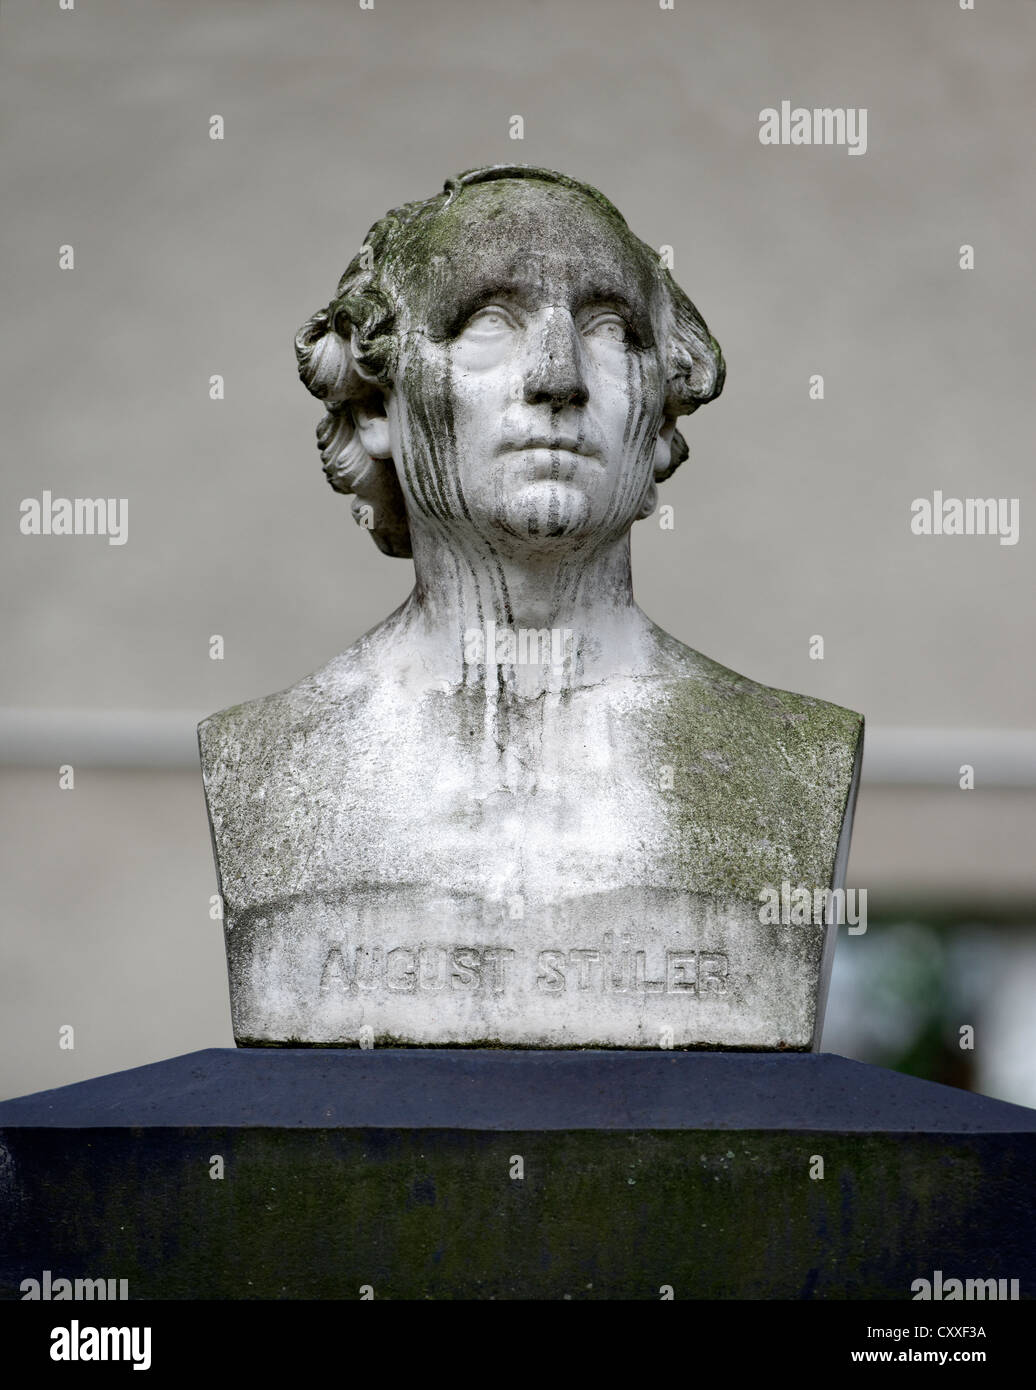 Bust, tomb of Fr. A. Stueler, 1800 - 1865, a German architect, Dorotheenstadt cemetery, Berlin - Stock Image